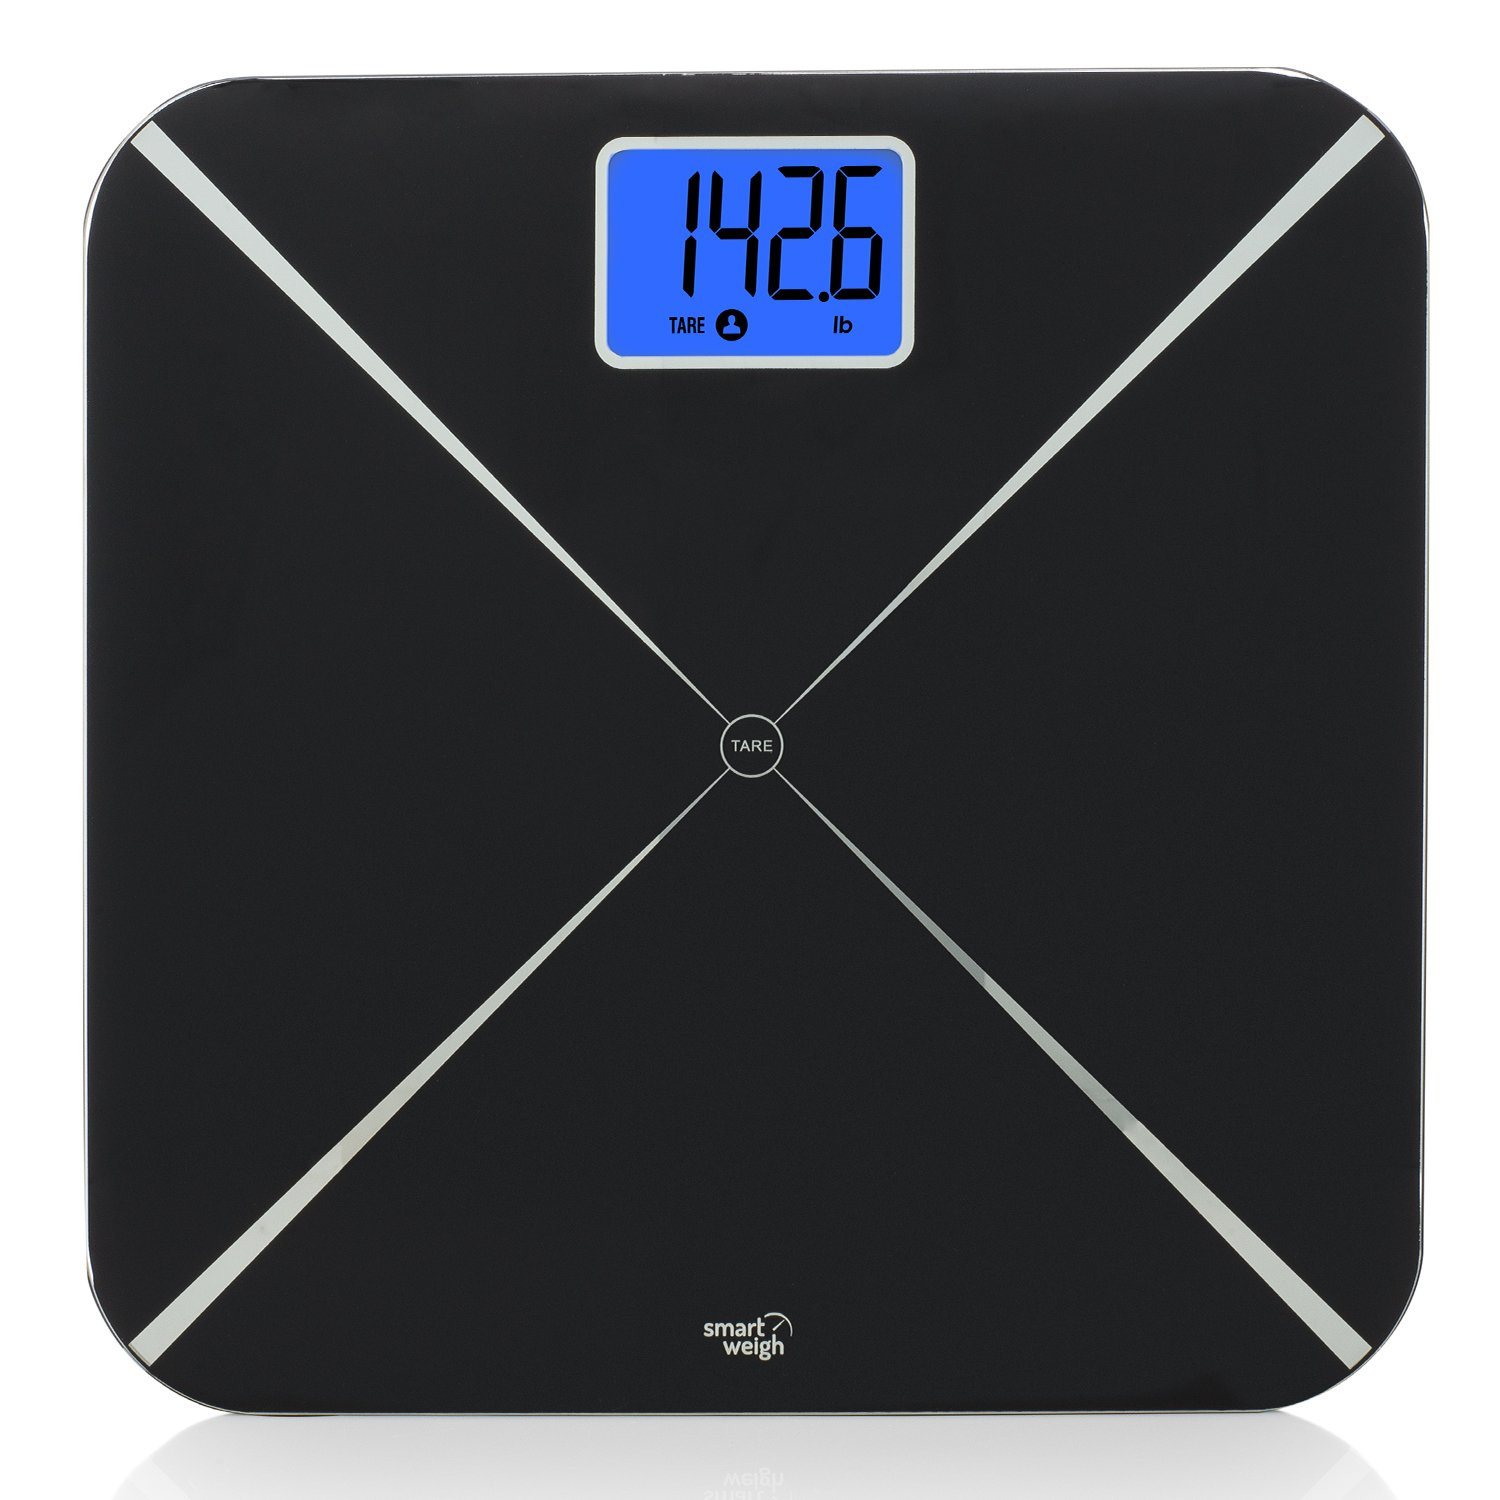 Smart Weigh Digital Body Weight Scale with Baby or Pet Tare Weighing Technology, Bathroom Scale with Large LCD Display and Tempered Glass Platform, 440lbs/200kg Capacity (Black) by Smart Weigh (Image #1)